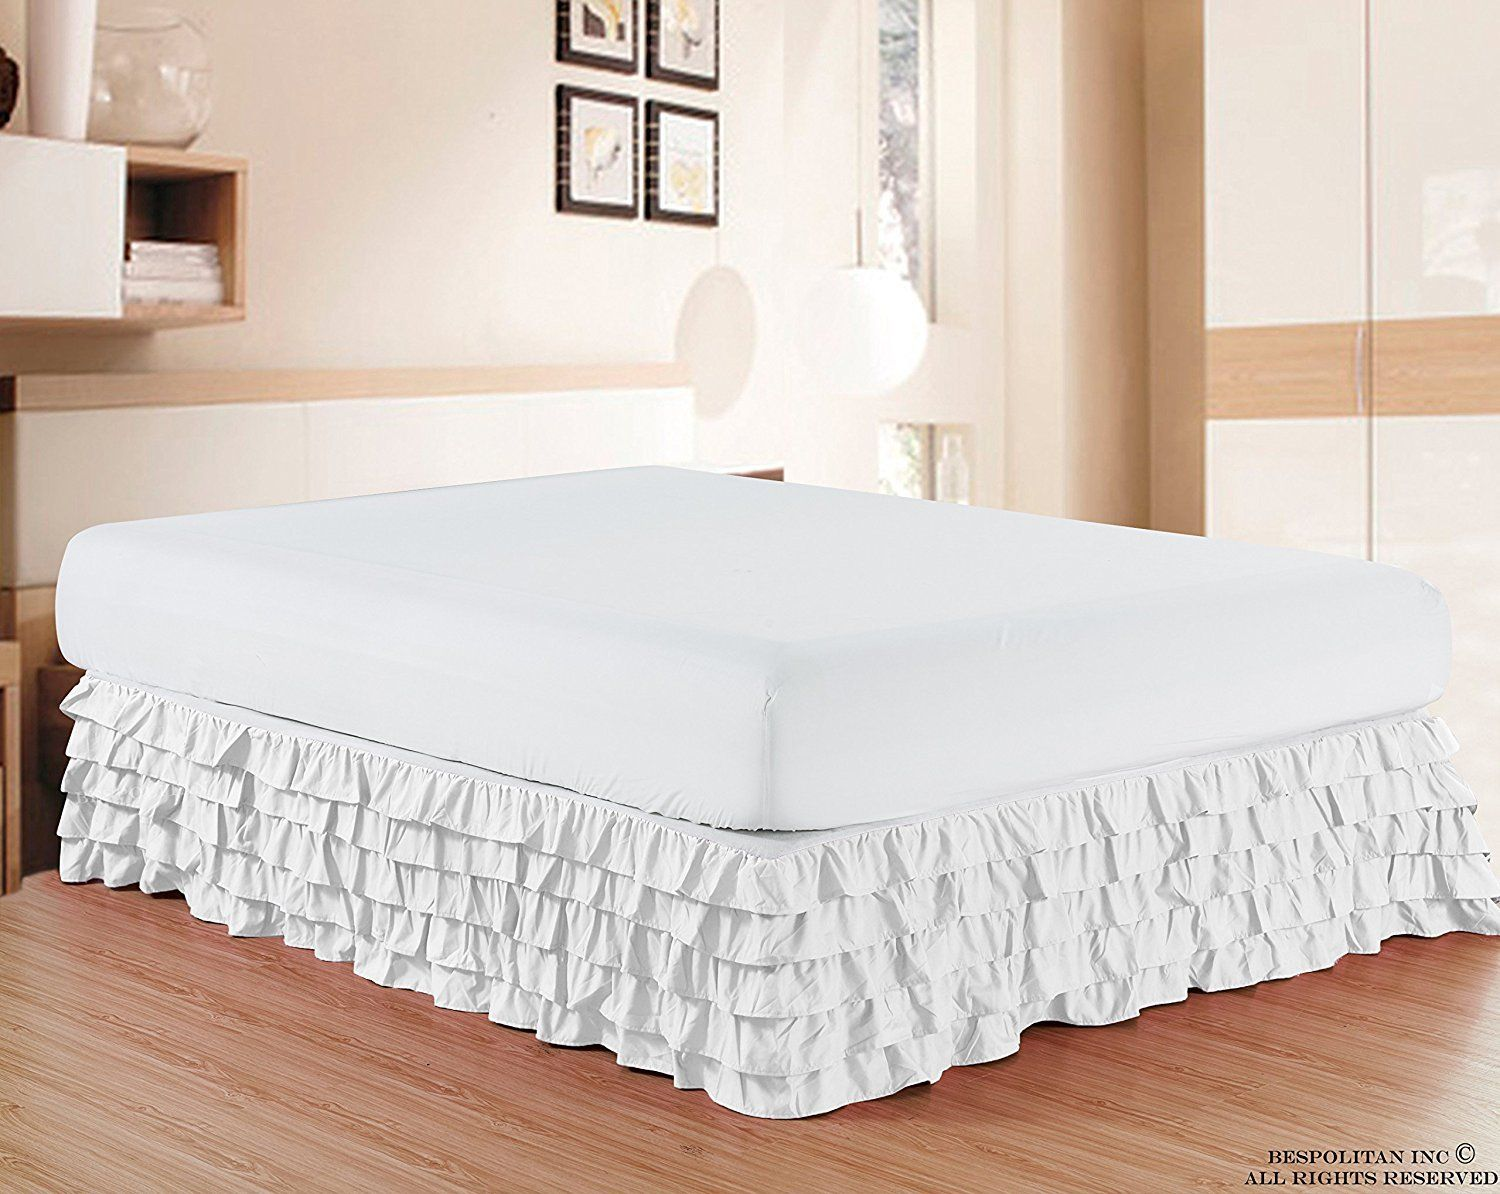 This is how to skirt a daybed Daybed bedding, Bedskirt